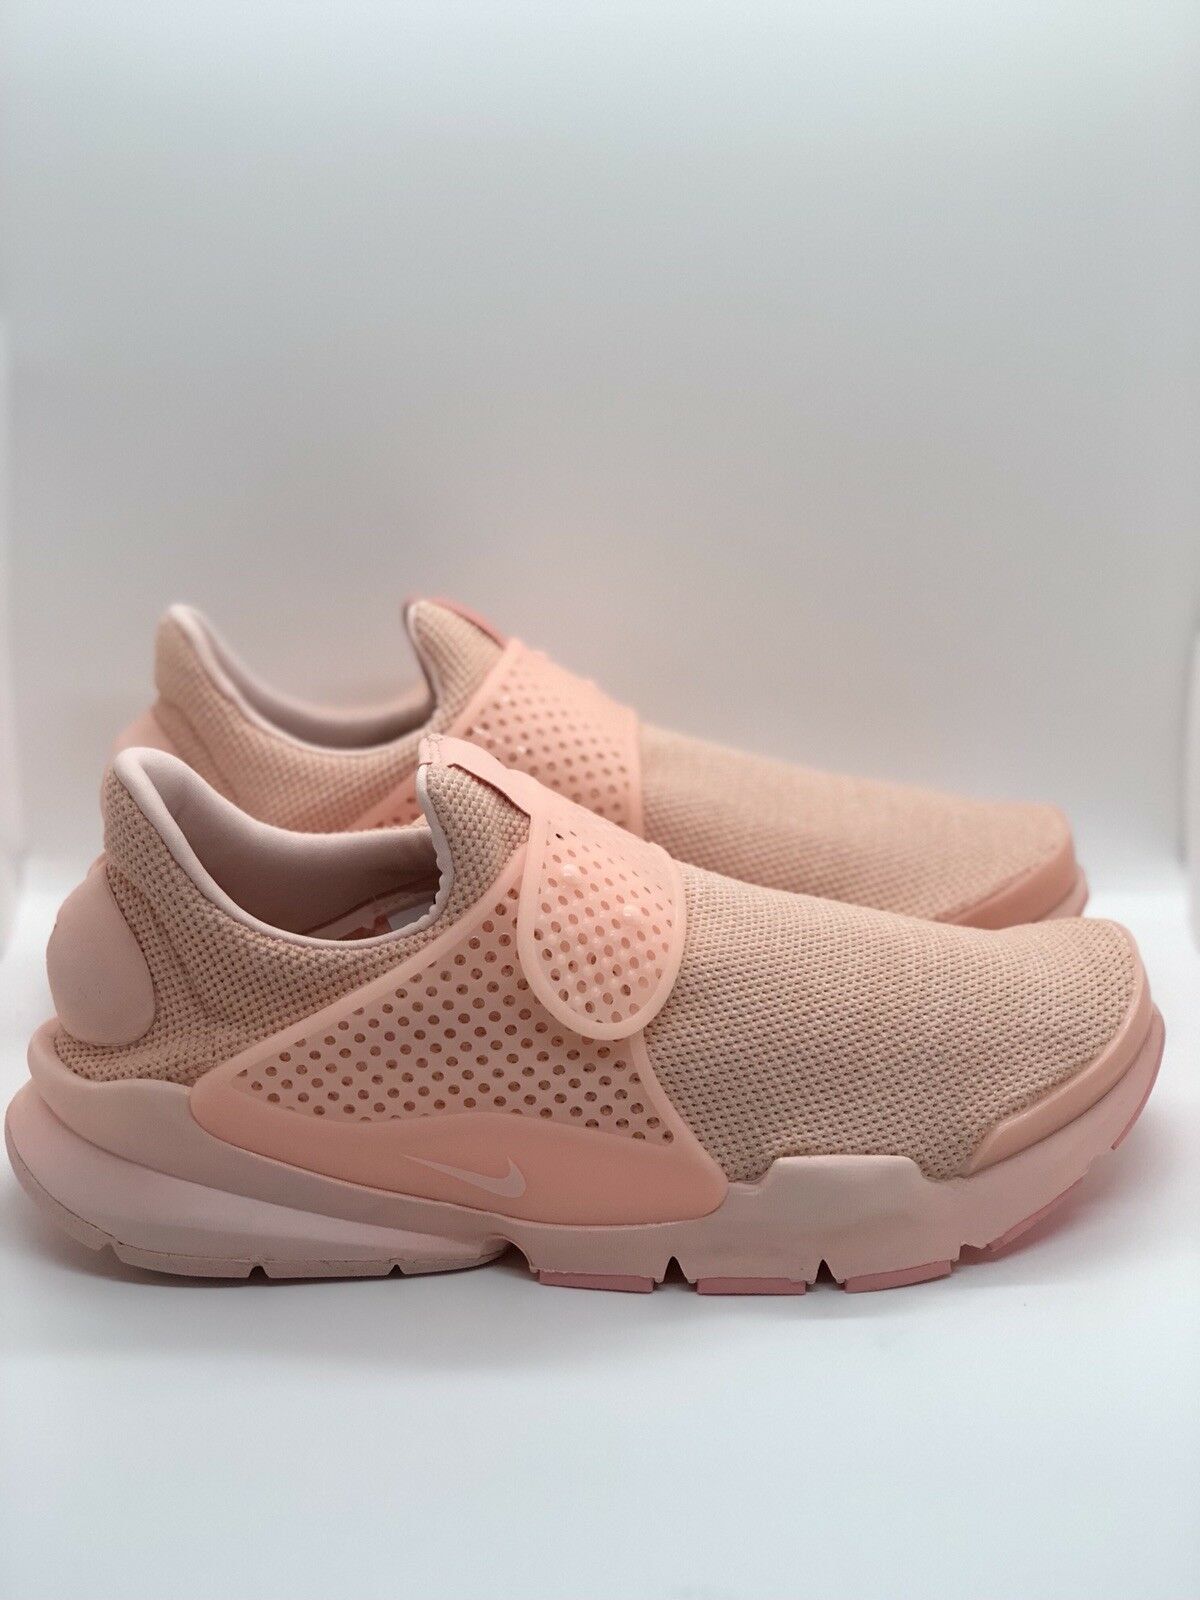 Nike SOCK DART BR (909551 (909551 (909551 800) Men's Athletic shoes Size 12 Arctic orange 6d06c8